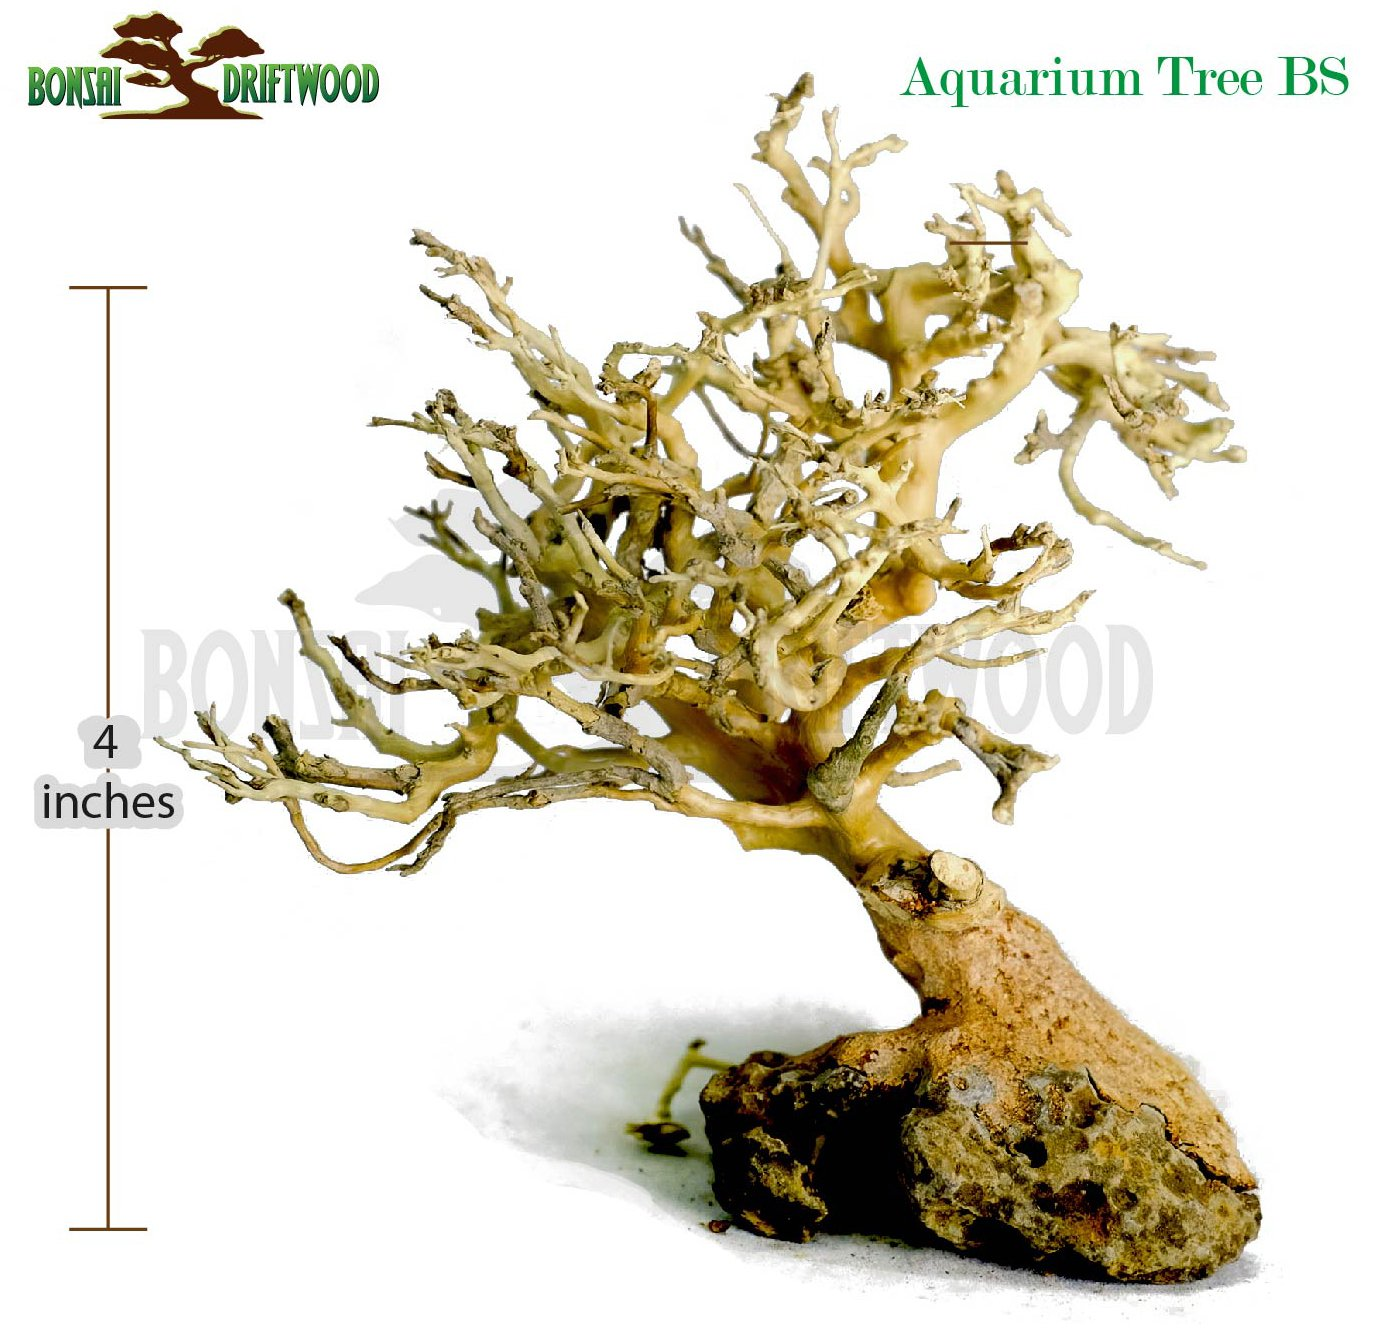 Bonsai Driftwood Aquarium Tree (5 Inch Height) Natural, Handcrafted Fish Tank Decoration | Helps Balance Water pH Levels, Stabilizes Environments | Easy to Install by Bonsai Driftwood (Image #3)